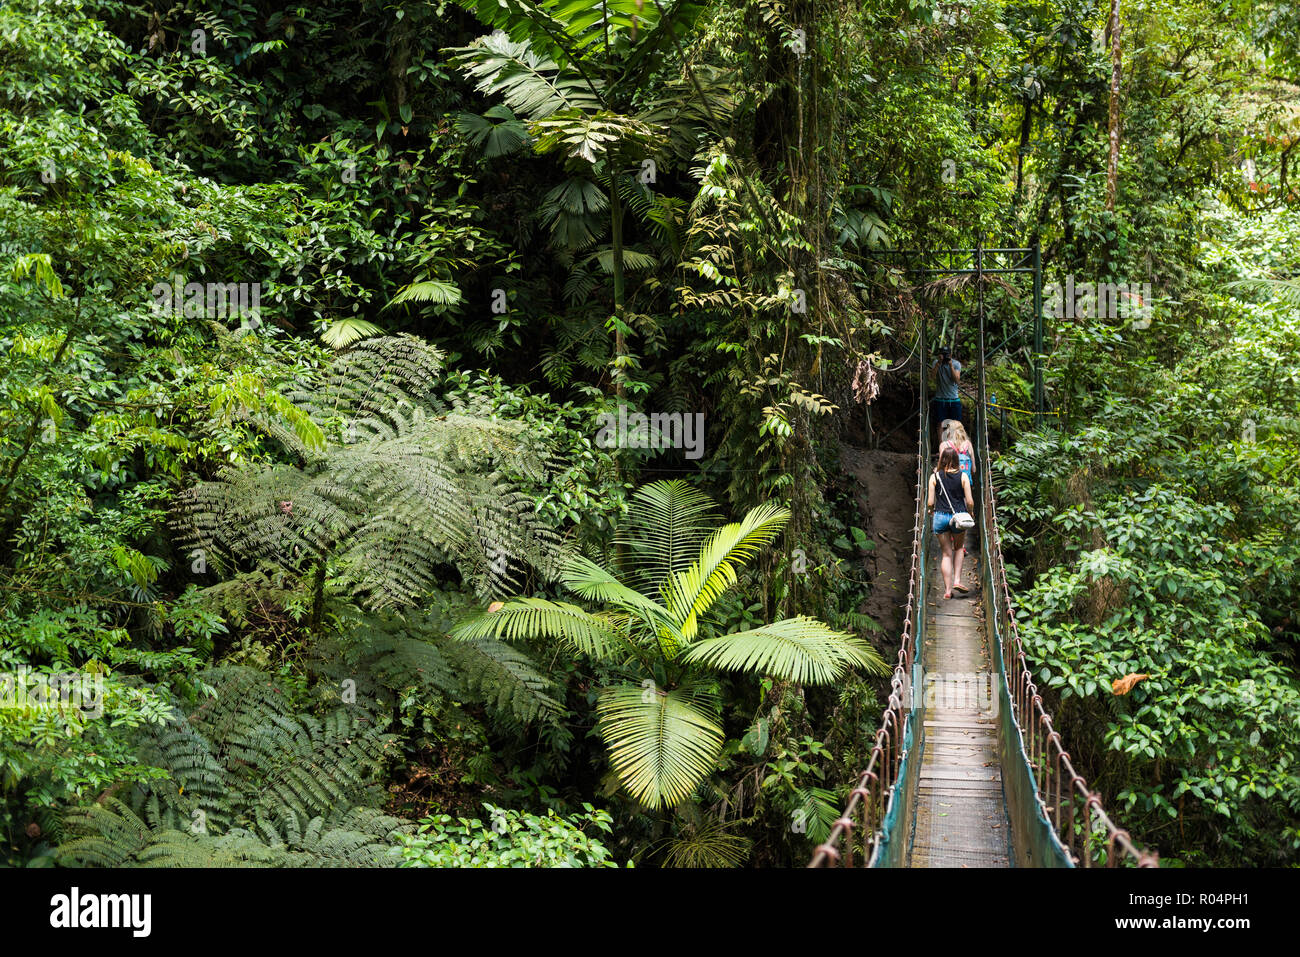 Rainforest on La Fortuna Waterfall hike, Alajuela Province, Costa Rica, Central America - Stock Image